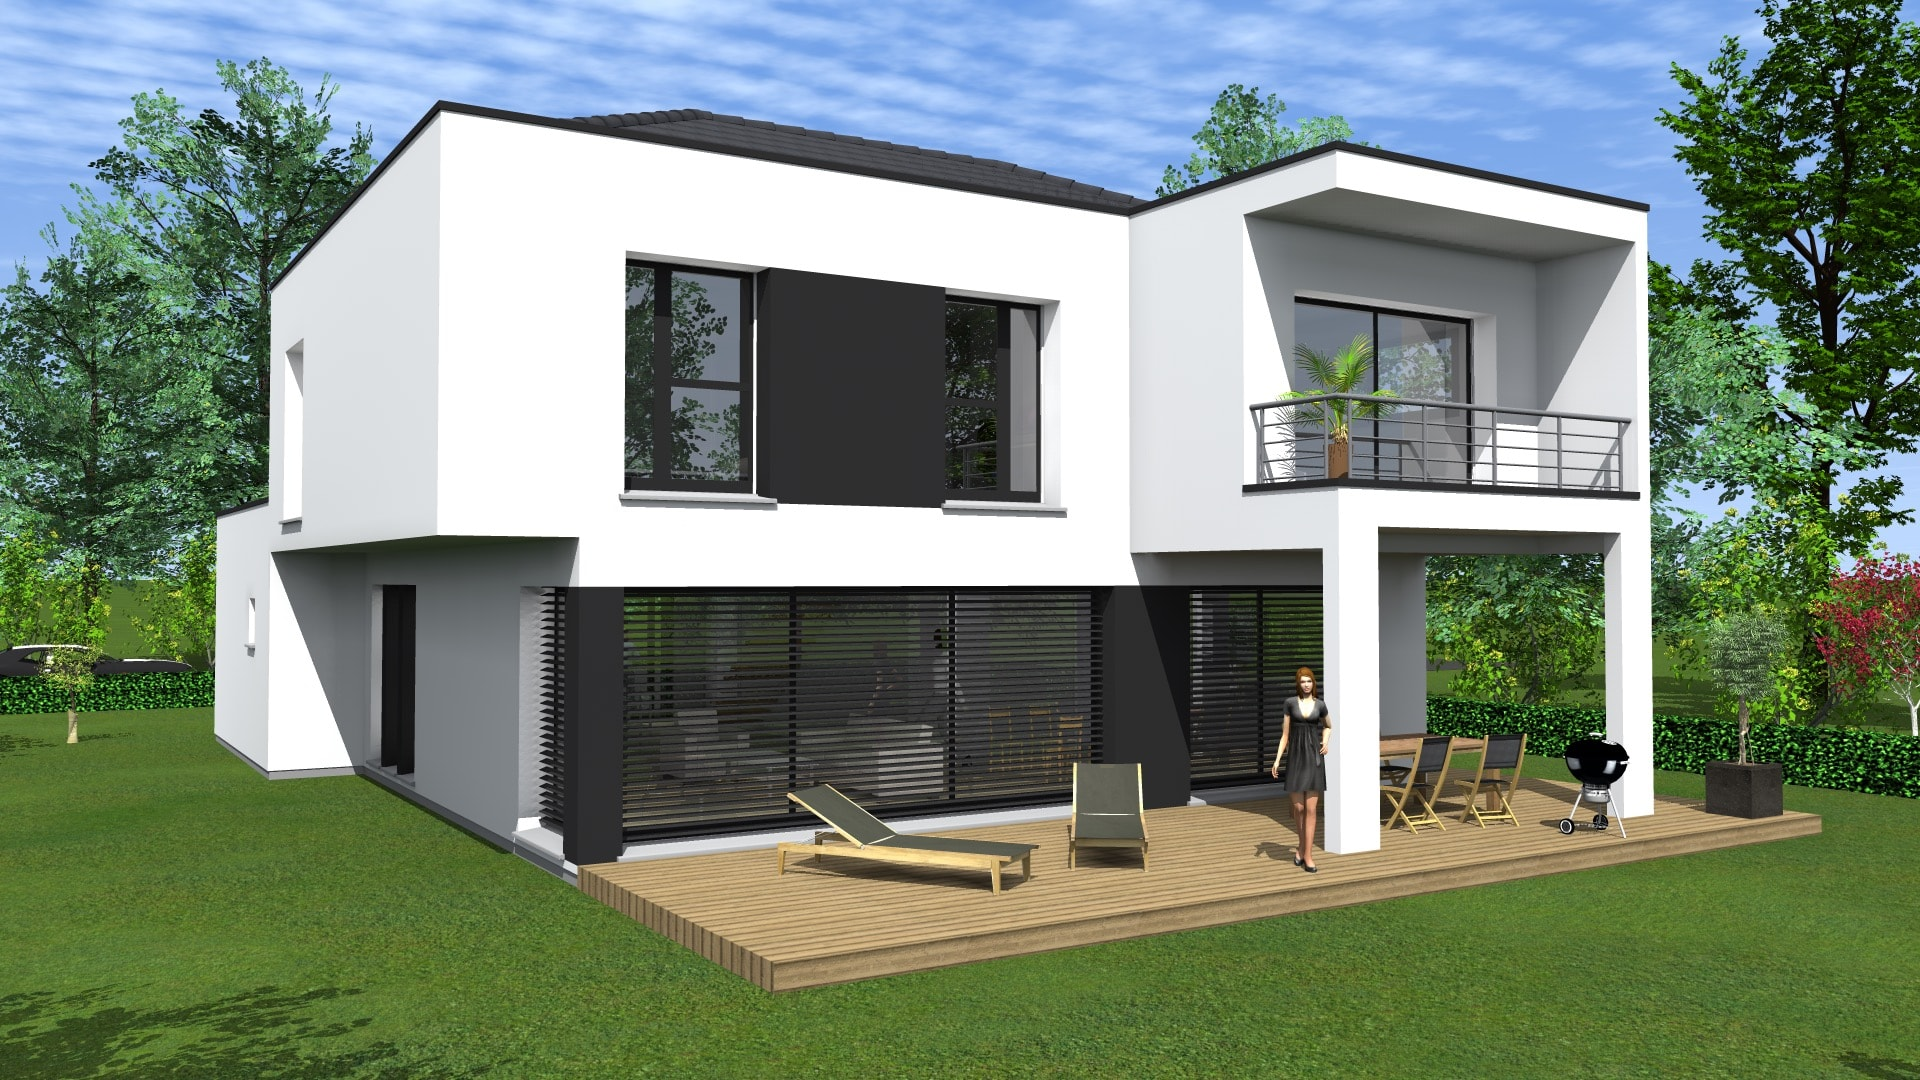 Maison en bois contemporaine toit plat for Constructeur maison bois contemporaine